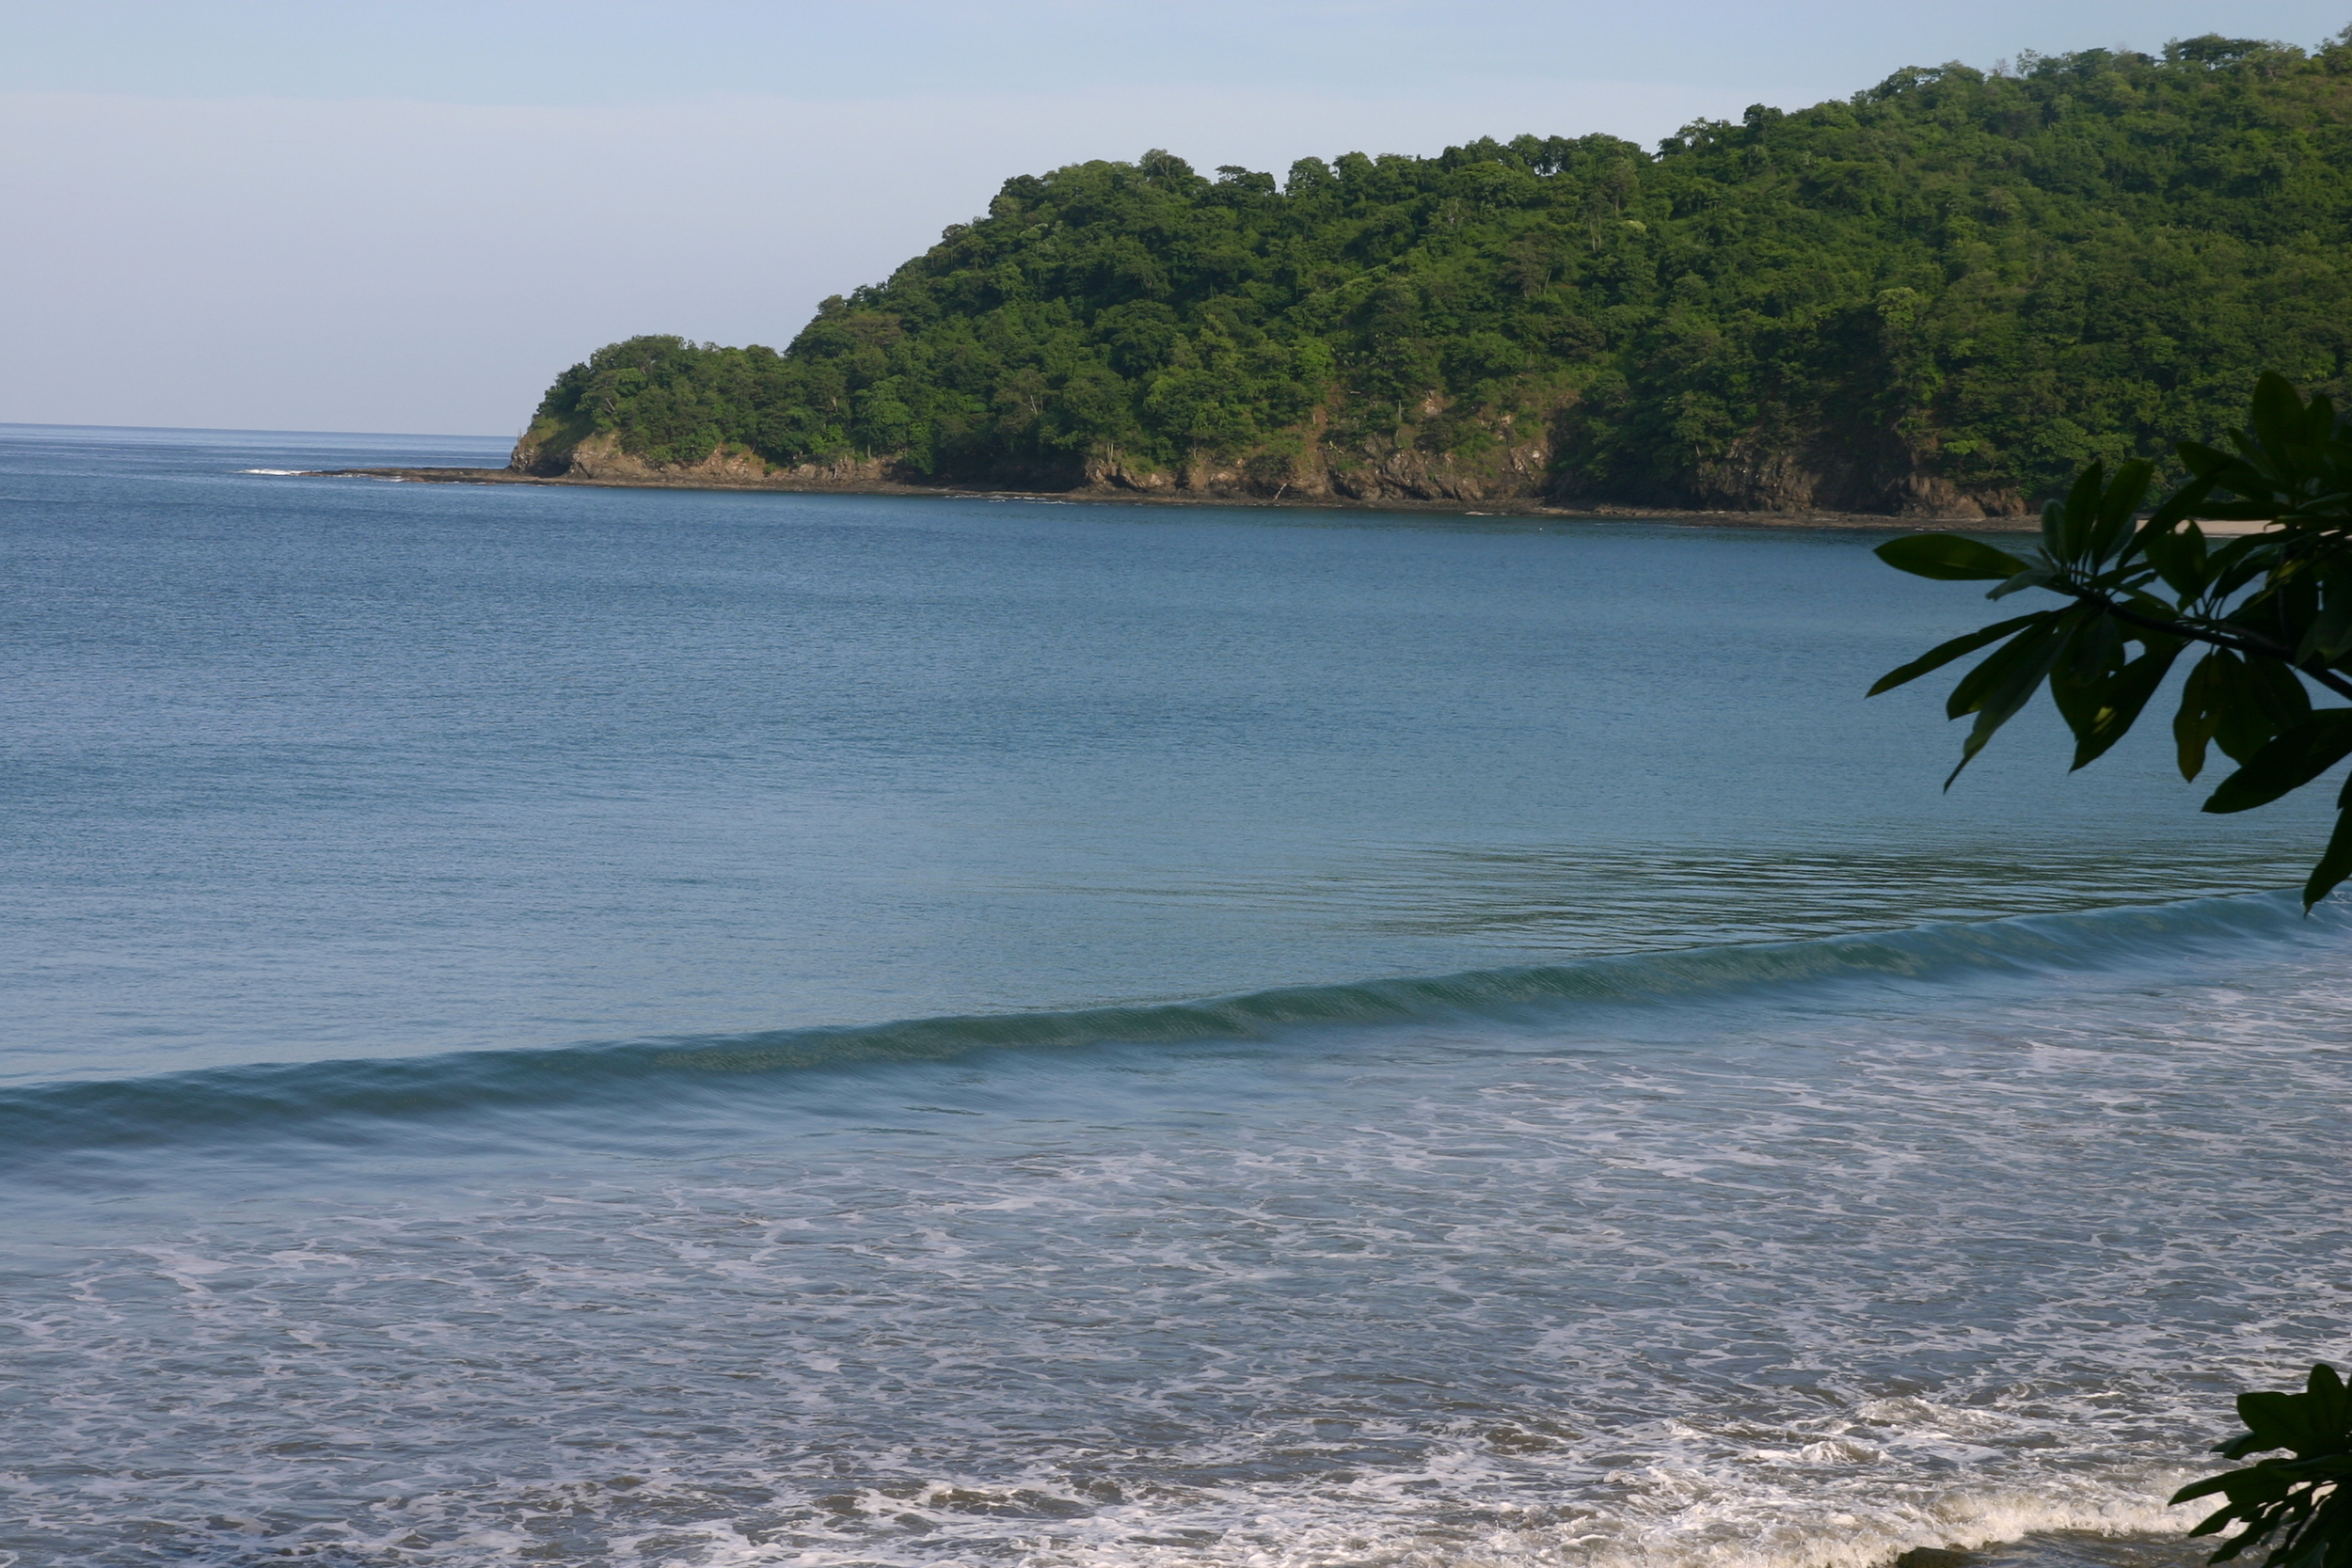 South_America_Costa_Rica_Las_Catalinas_Beach.JPG